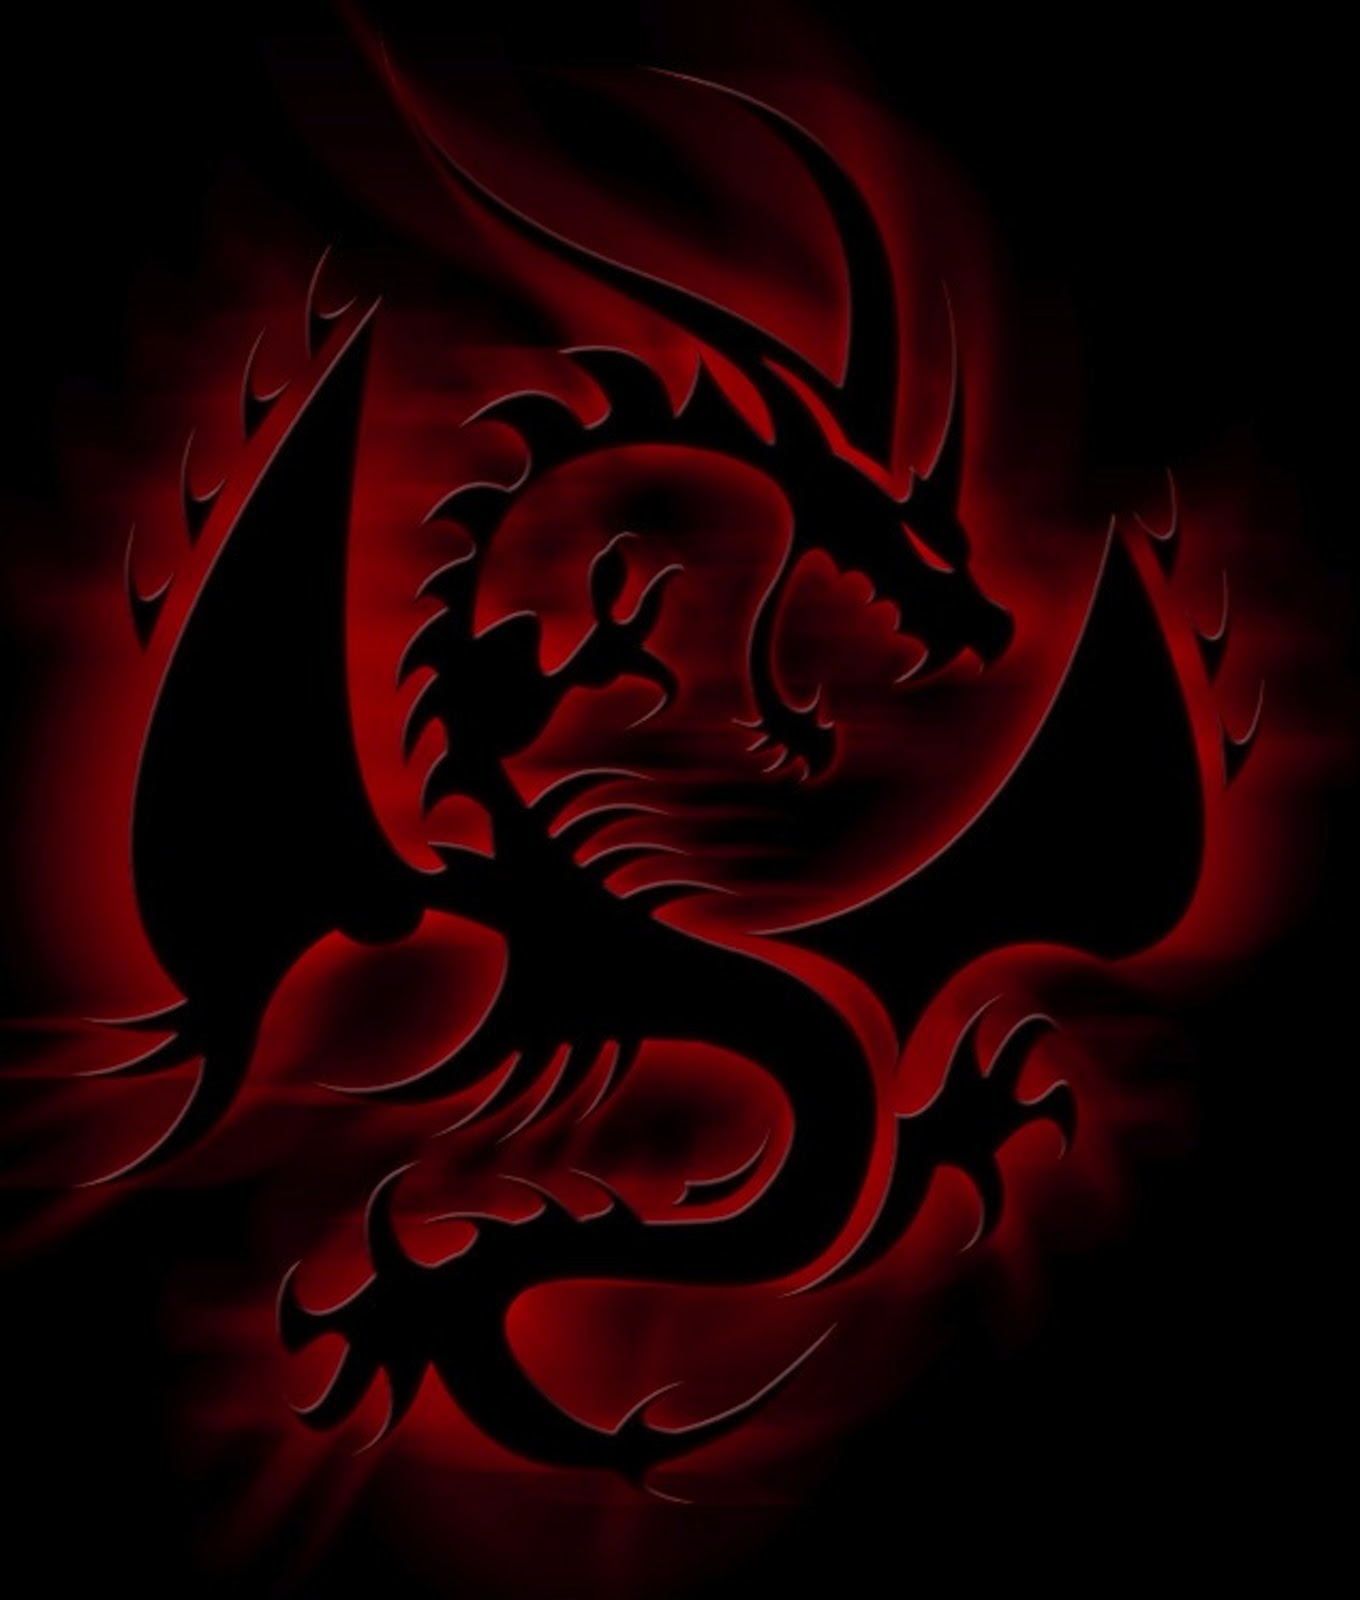 Red And Black Dragon Wallpaper Pictures to Pin on ...